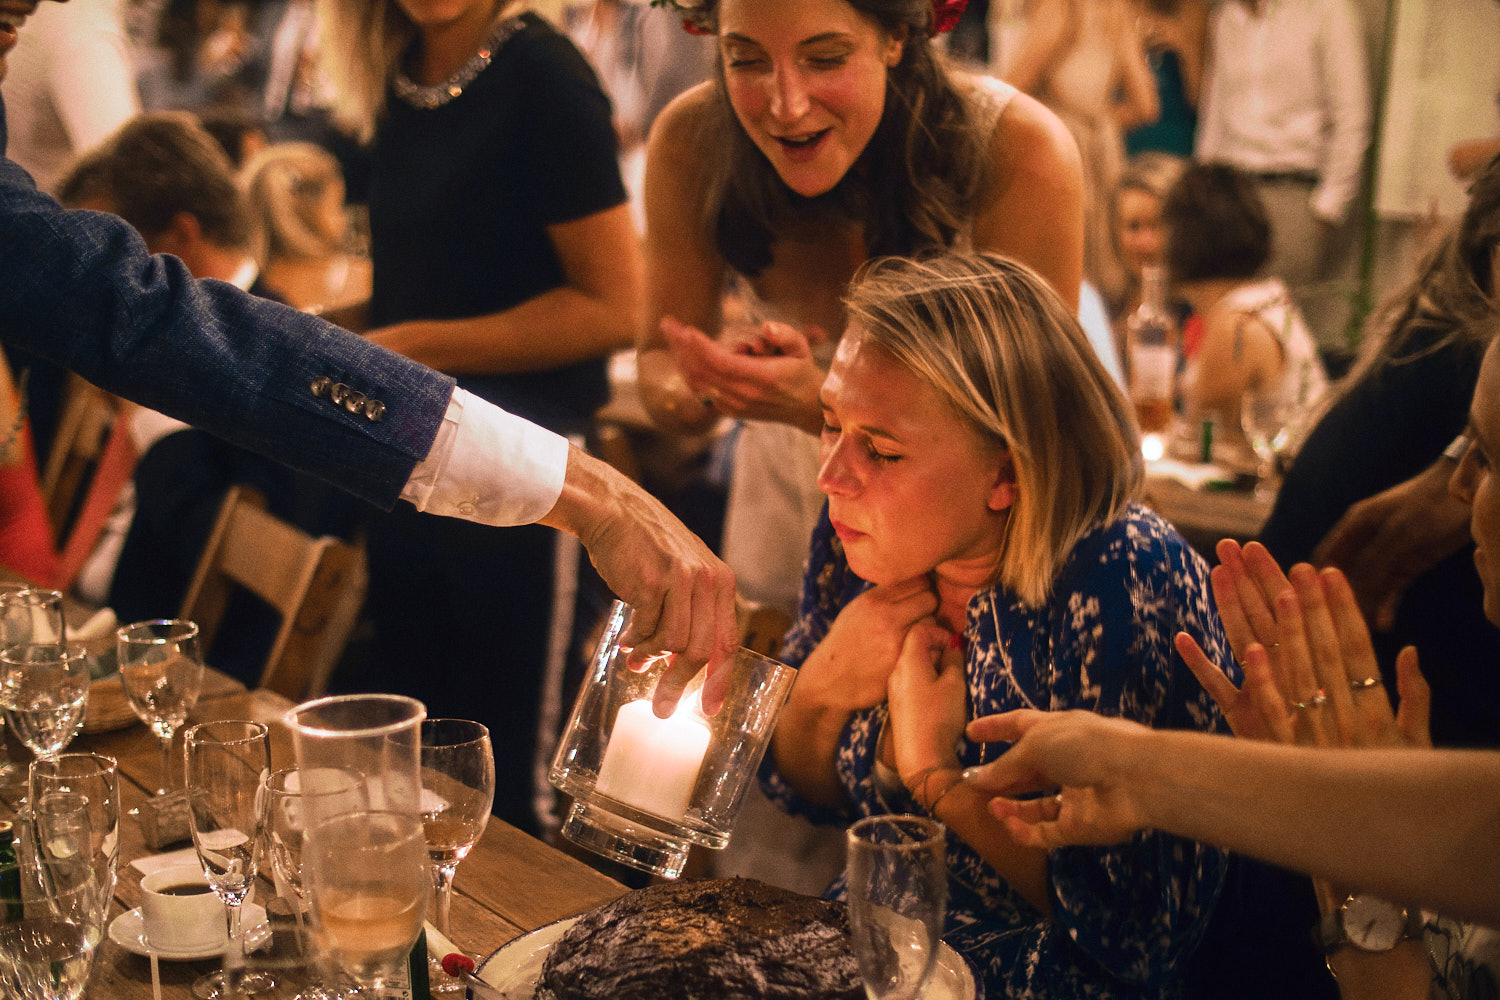 A wedding guests blows out candles on her birthday